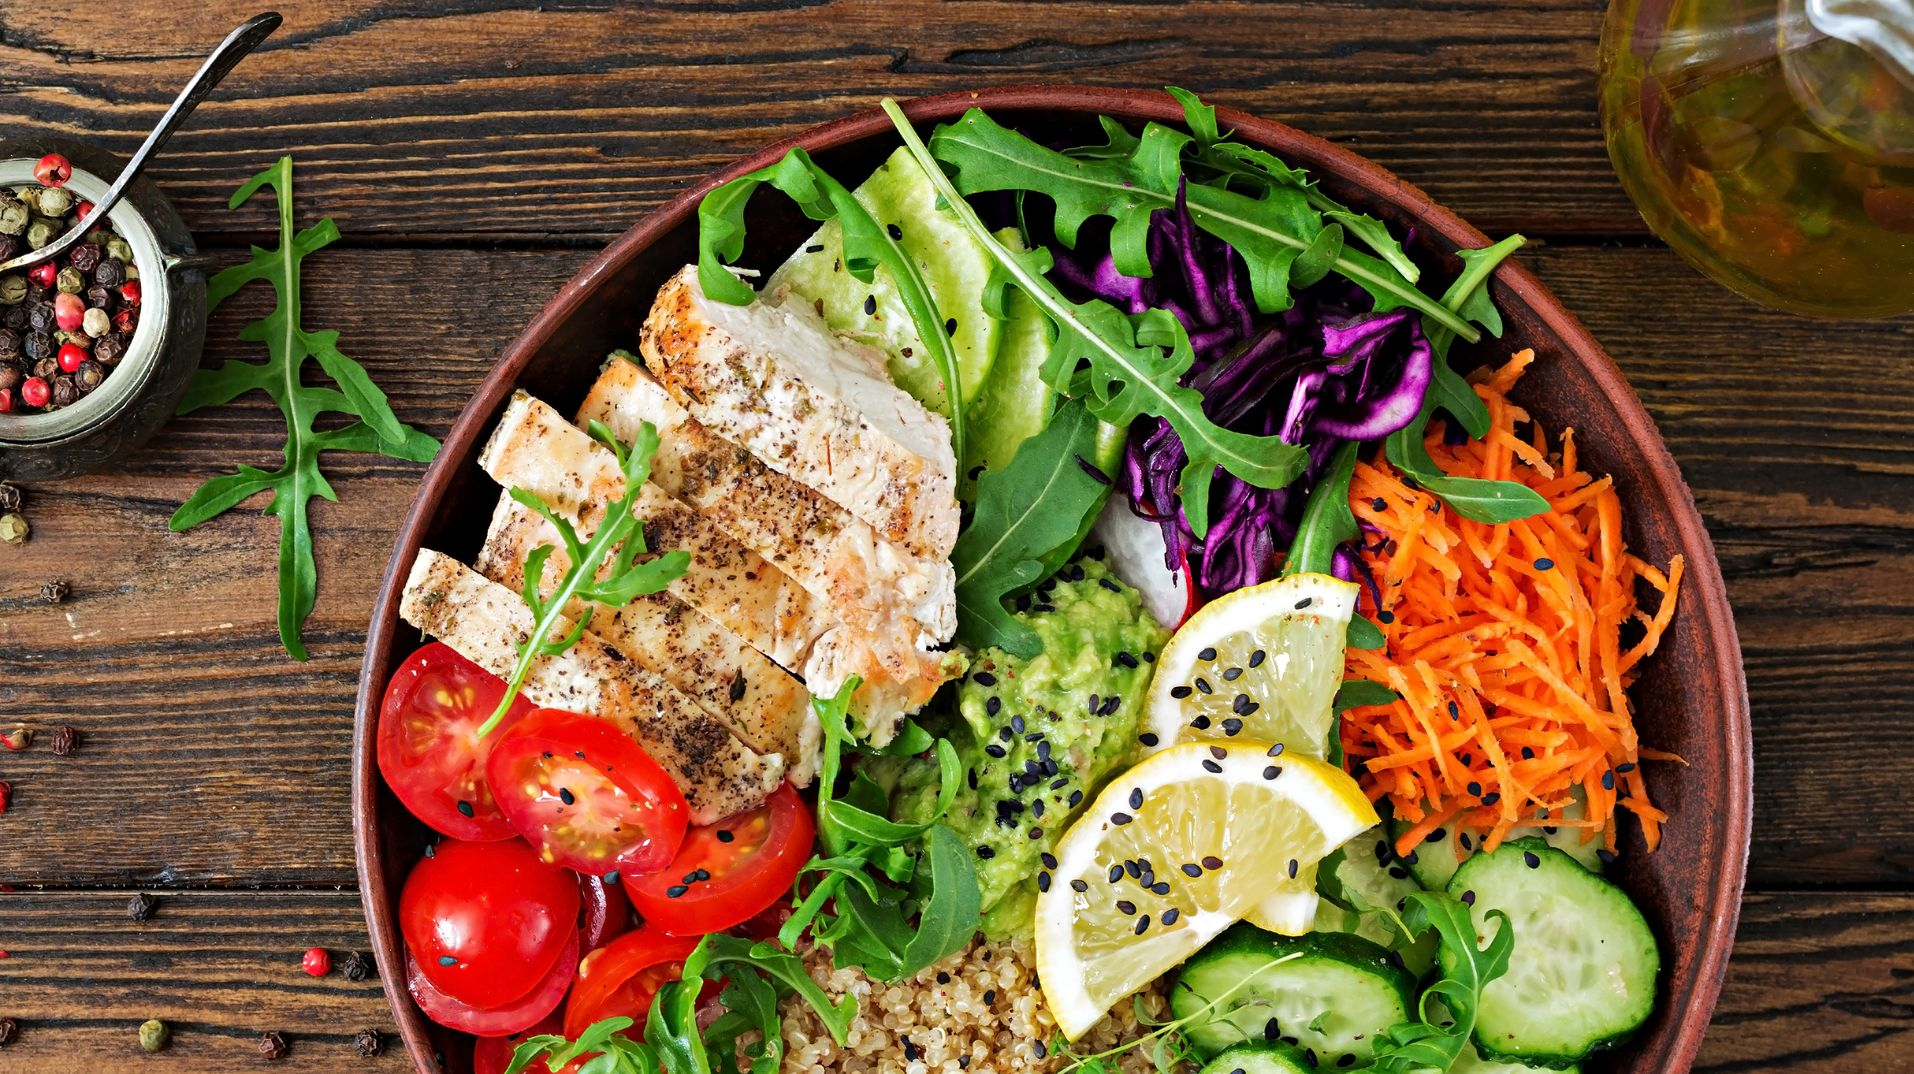 Healthy dinner. Buddha bowl lunch with grilled chicken and quinoa, tomato, guacamole, carrot, red cabbage, cucumber and arugula on wooden background. Flat lay. Top view. Banner